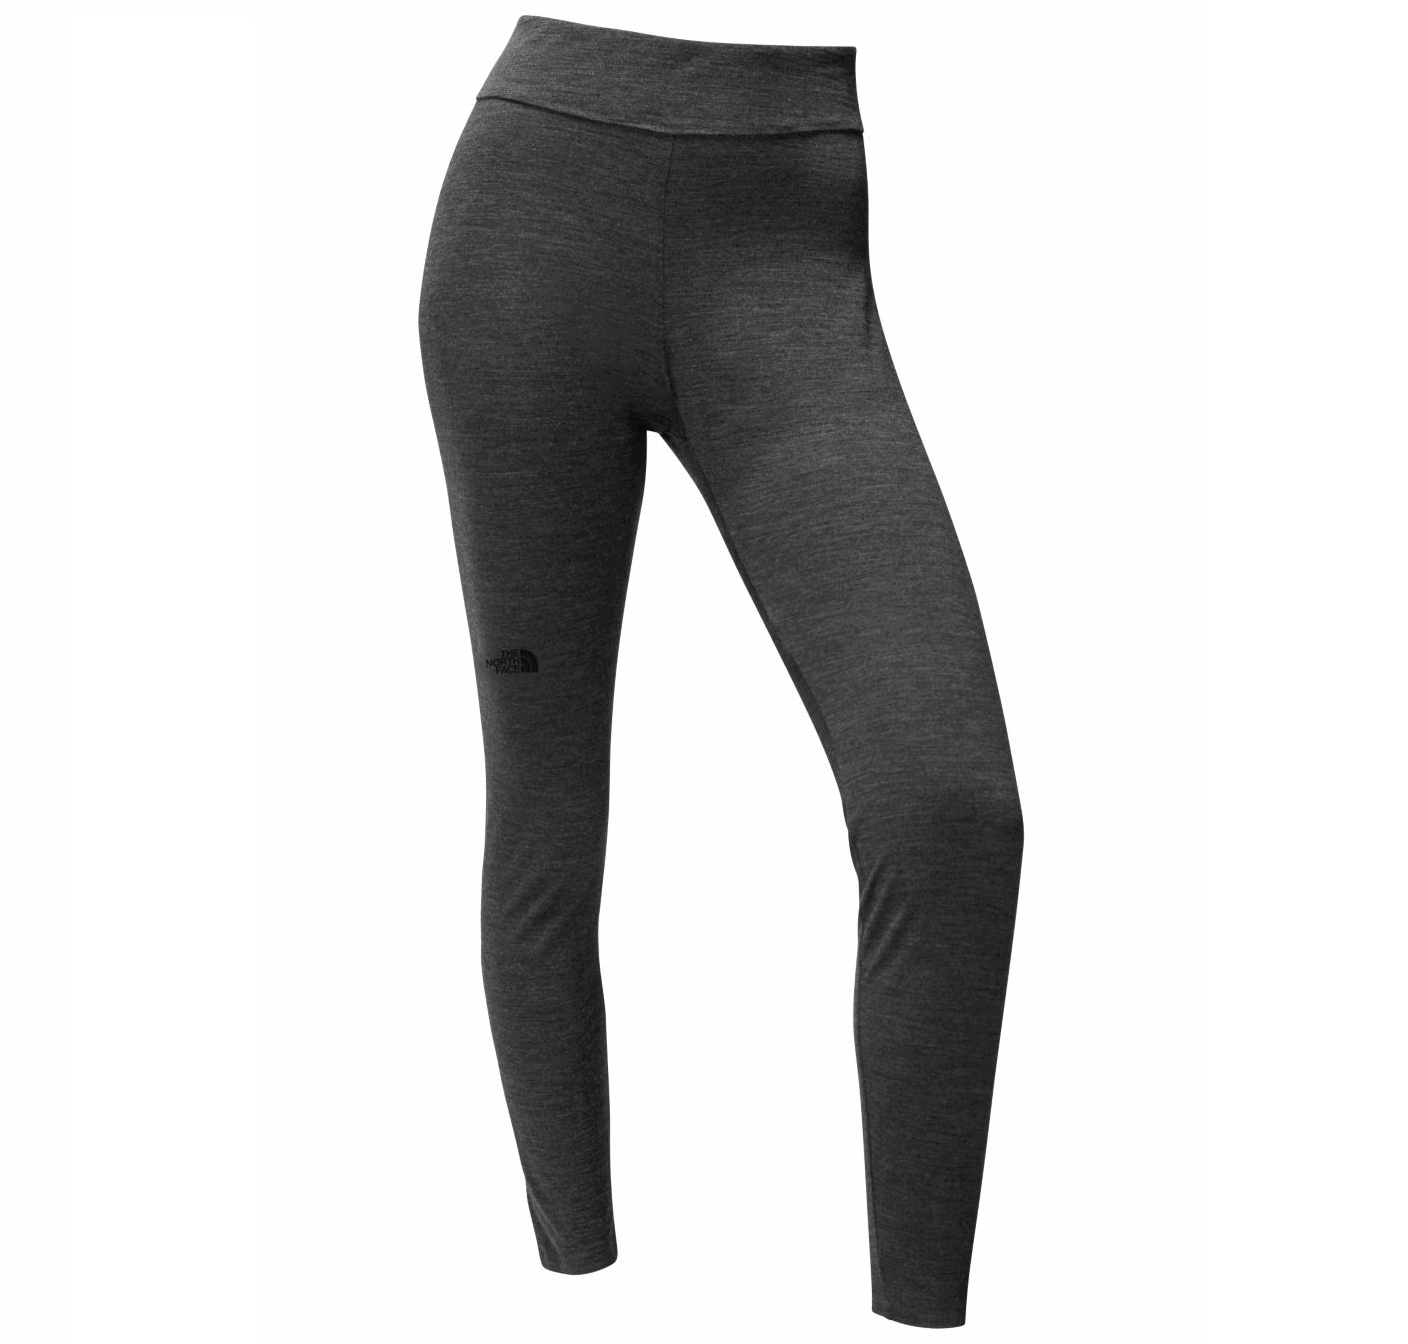 Northface Womens Wool Baselayer tights